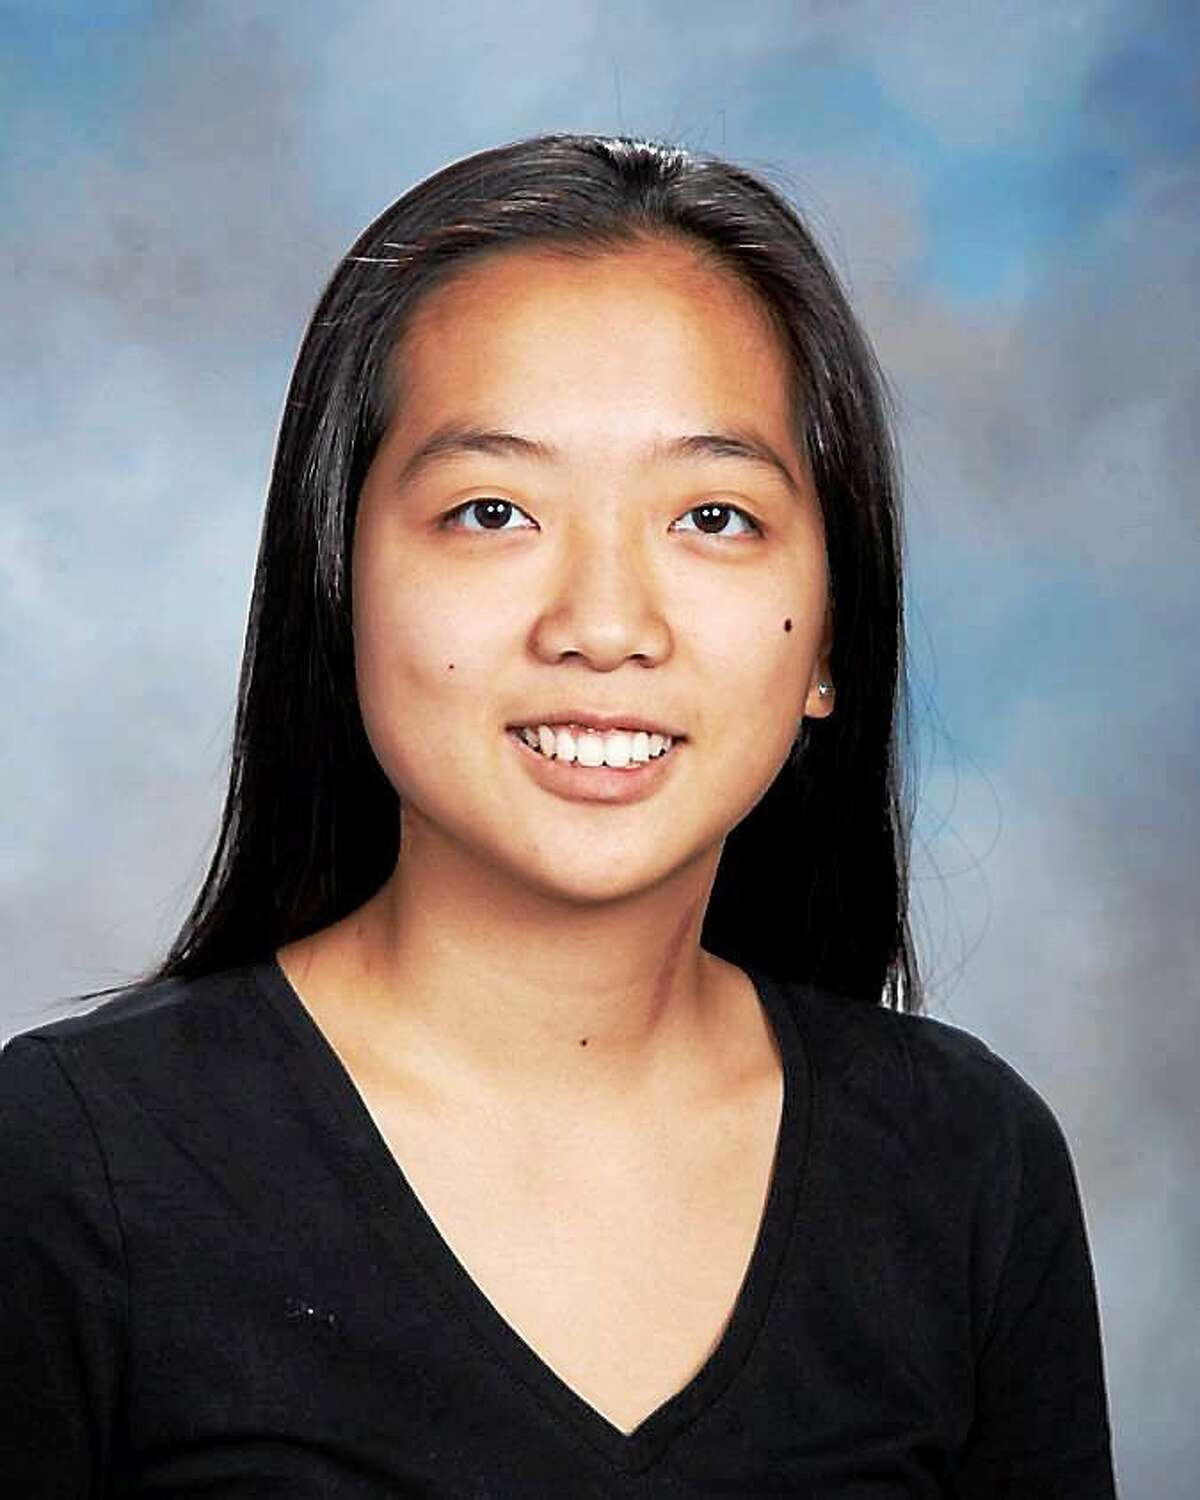 Lily Zhao, Middletown High School valedictorian, will attend Harvard University in the fall.